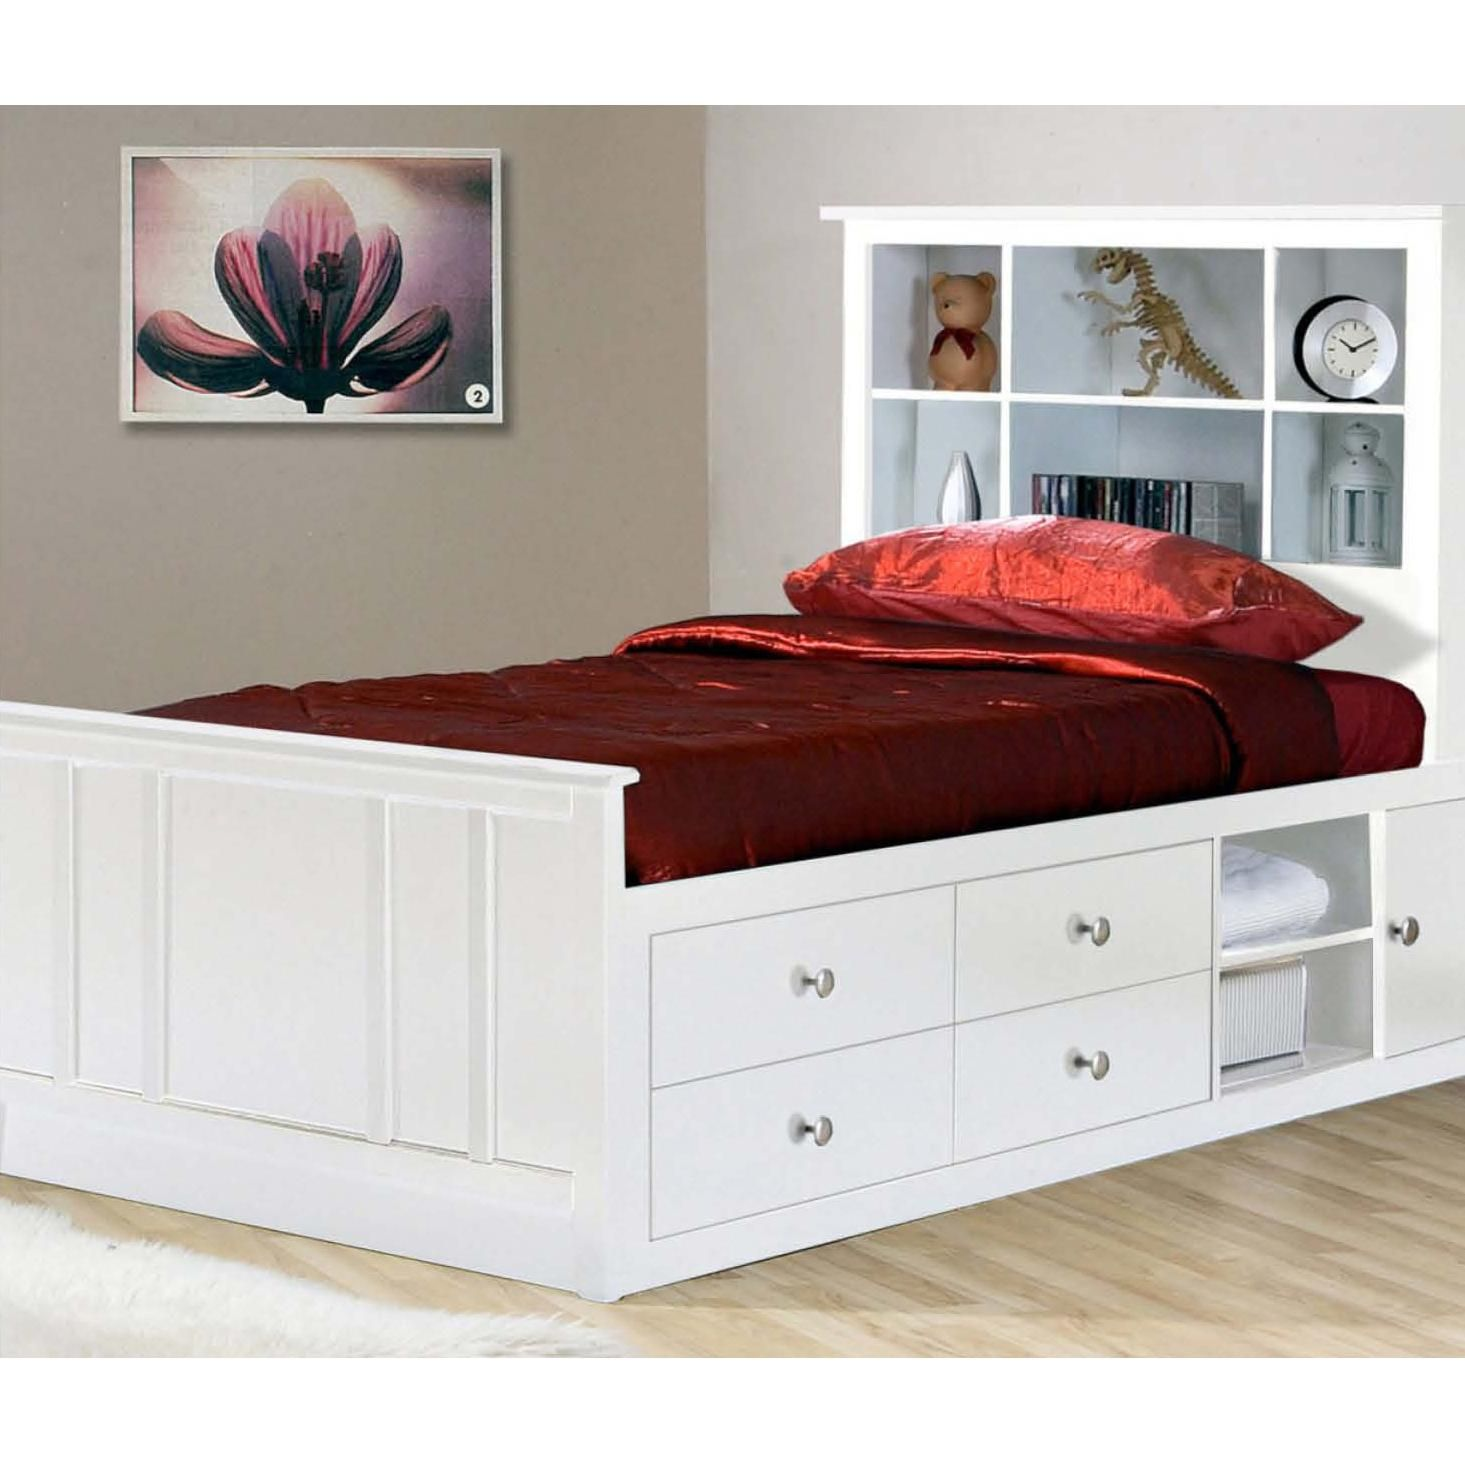 White twin bed with storage - Millie White Millie White Twin Captain S Bed By Private Reserve